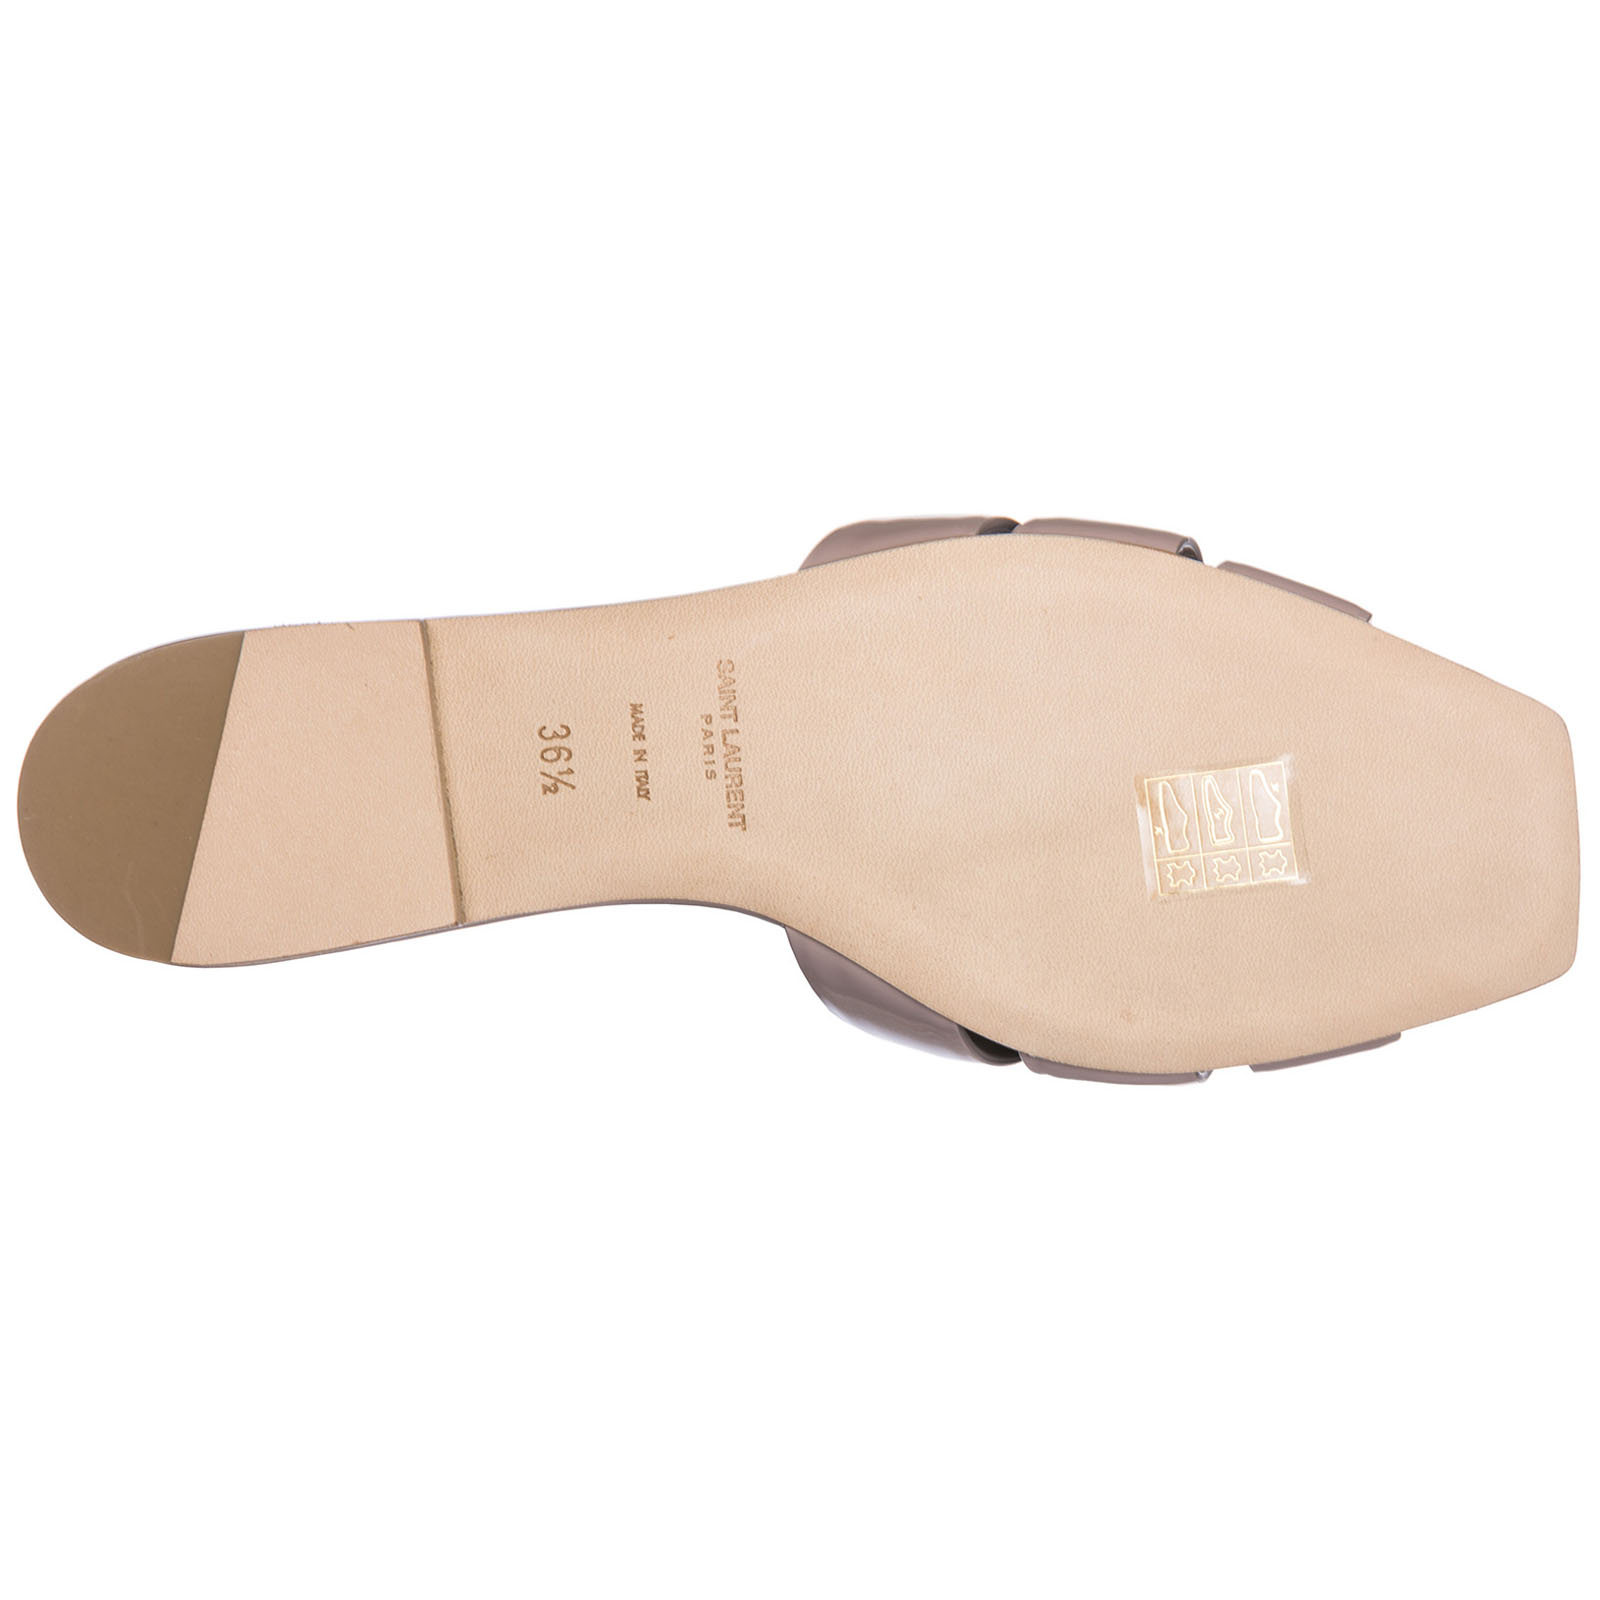 746c01f66a0 ... Women s genuine leather slippers sandals nu pieds ...